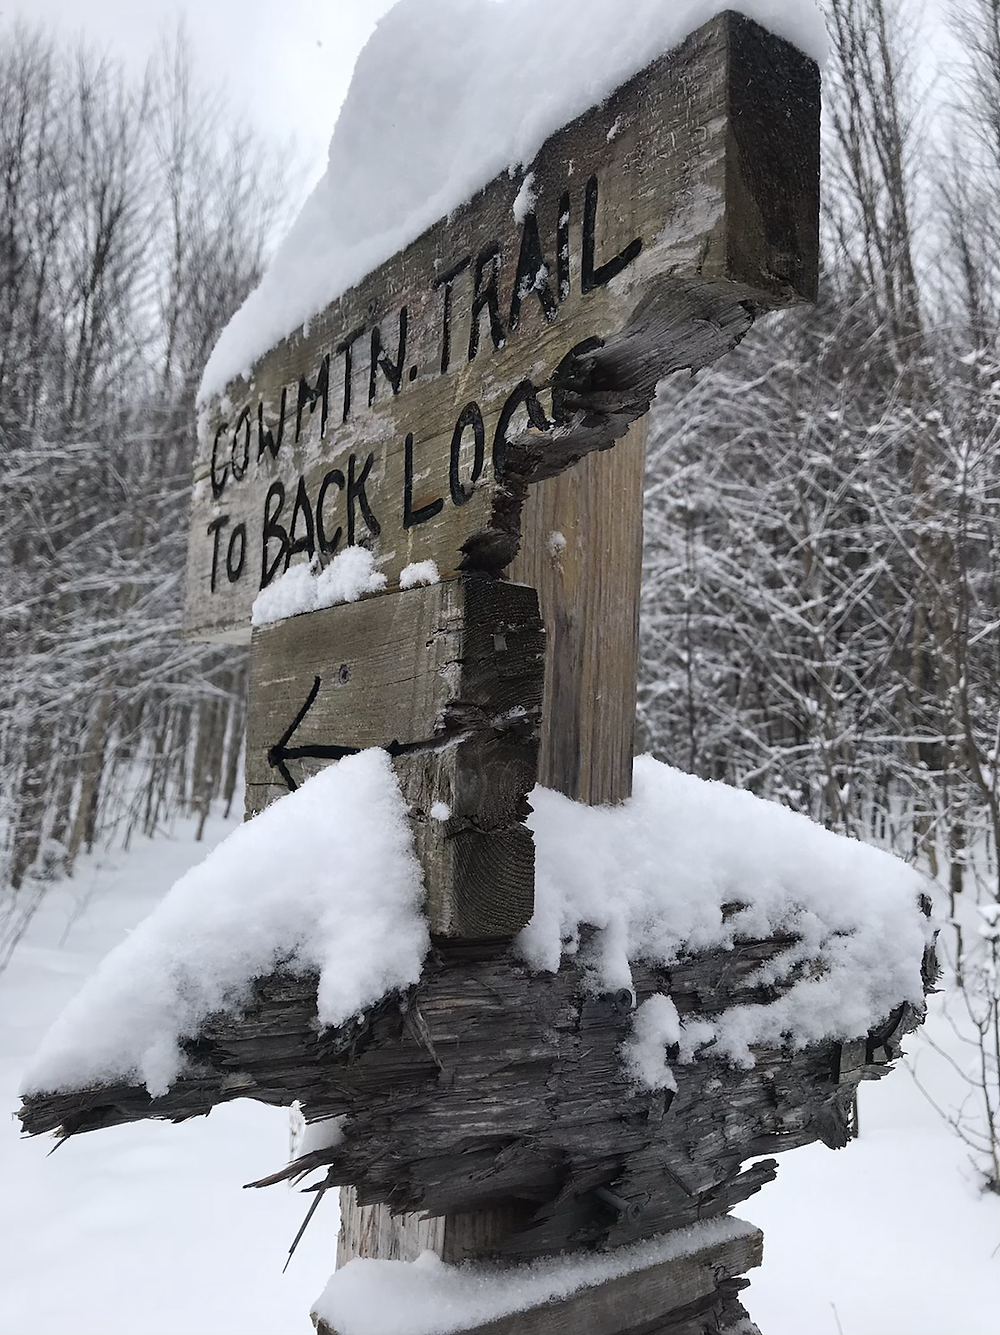 Beat up Cow Mountain trail sign